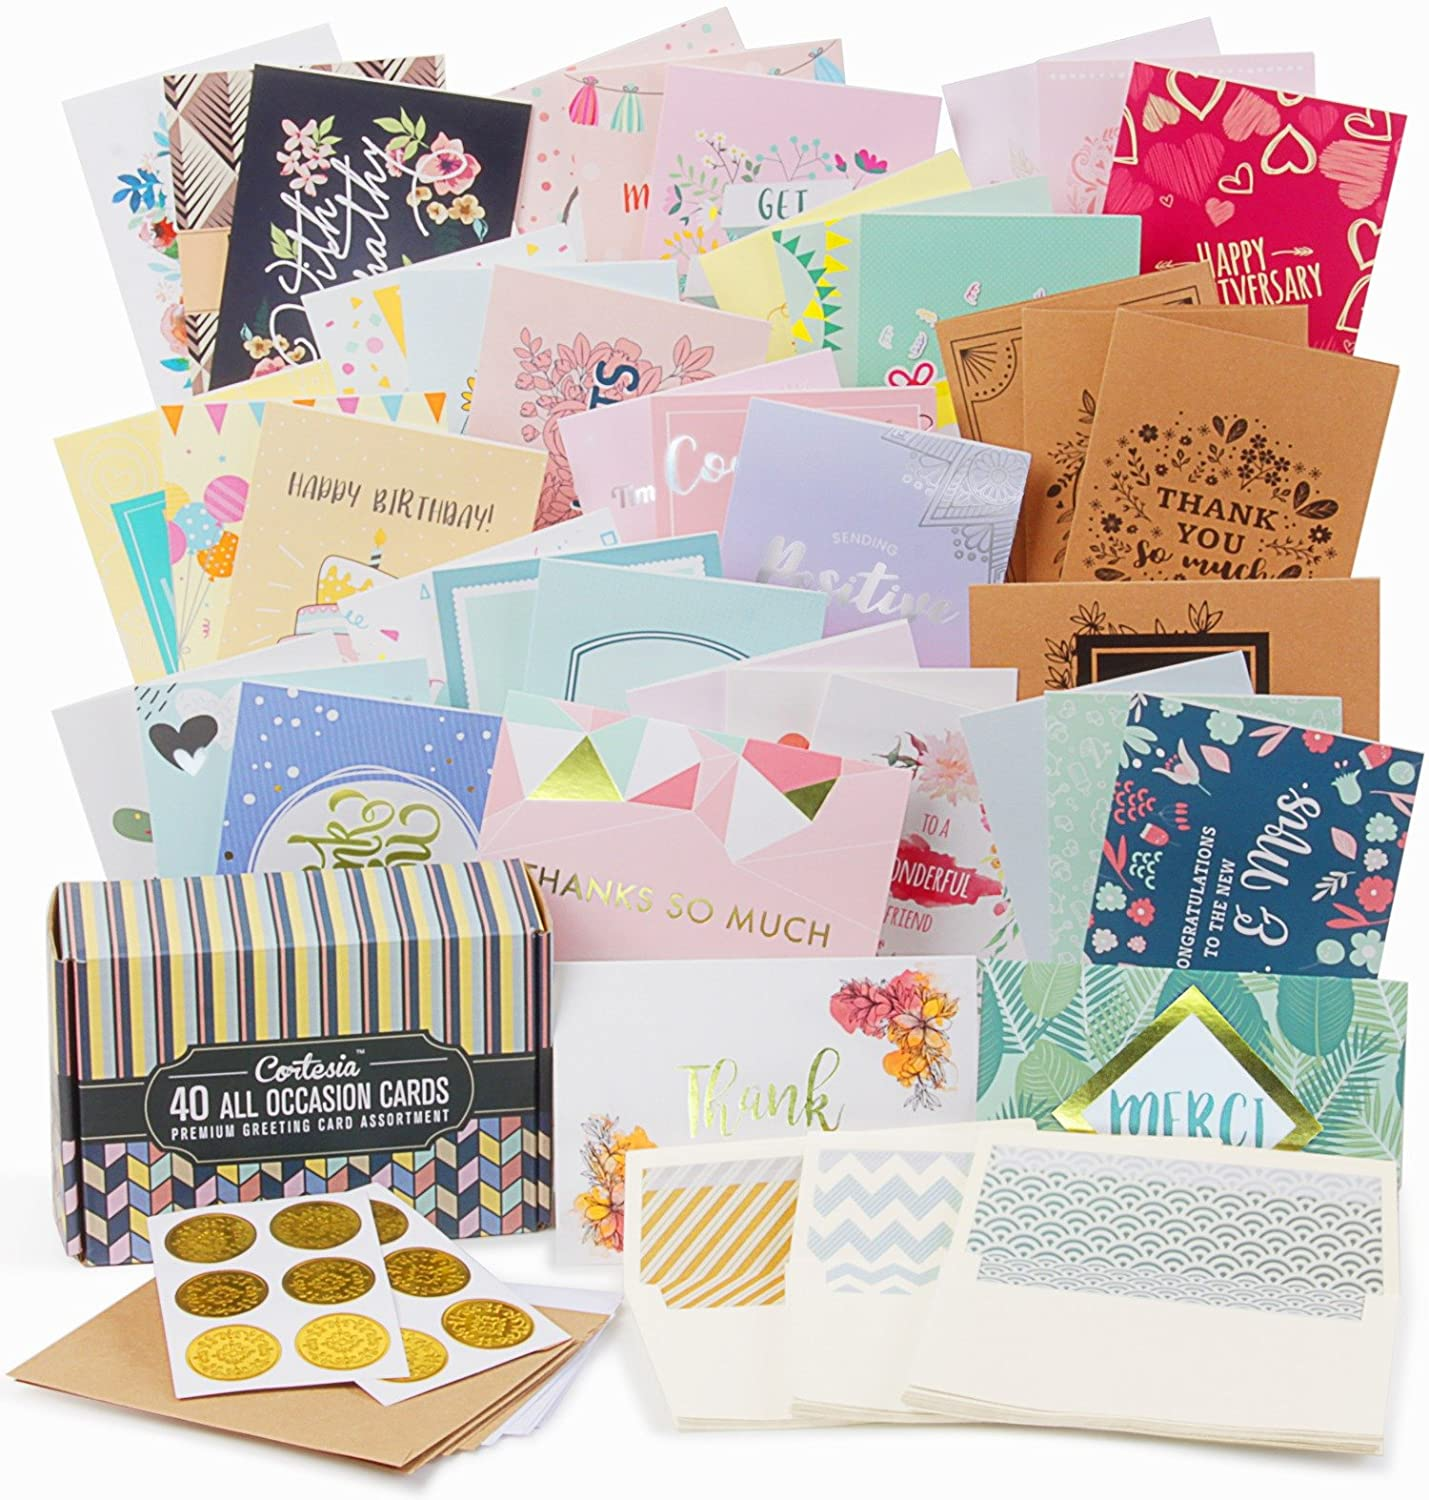 Amazon cortesia all occasion premium greeting cards assortment amazon cortesia all occasion premium greeting cards assortment 40 unique designs with gold and silver embellishments box set incl m4hsunfo